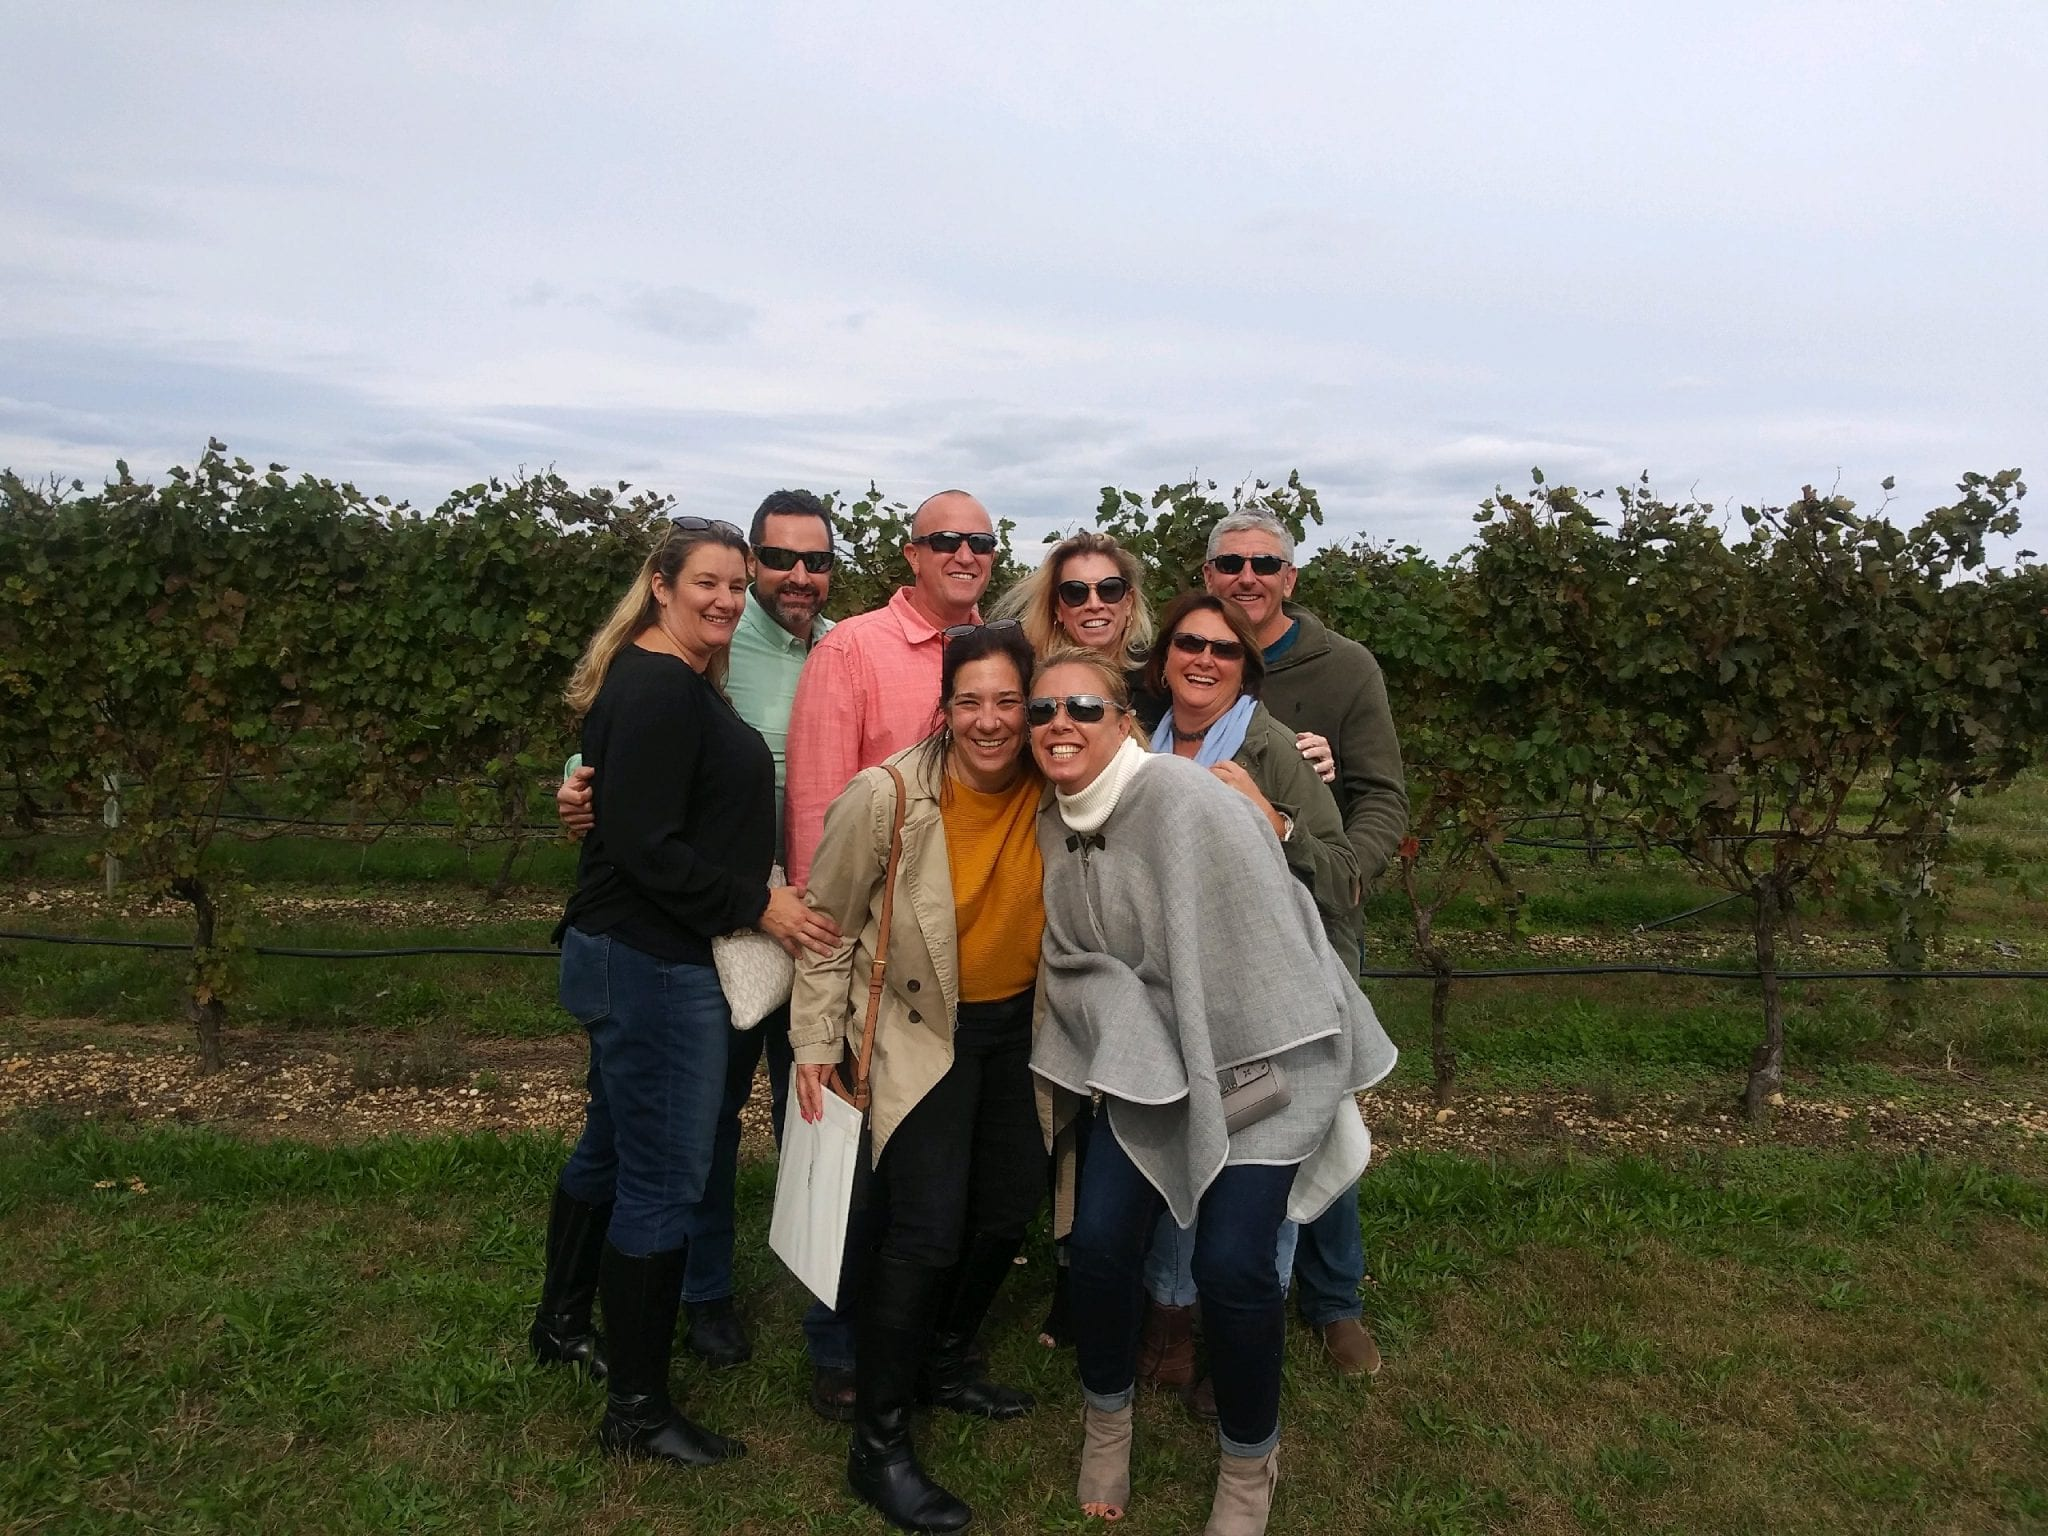 Enjoying Wine with Friends - LI Vineyard Tours